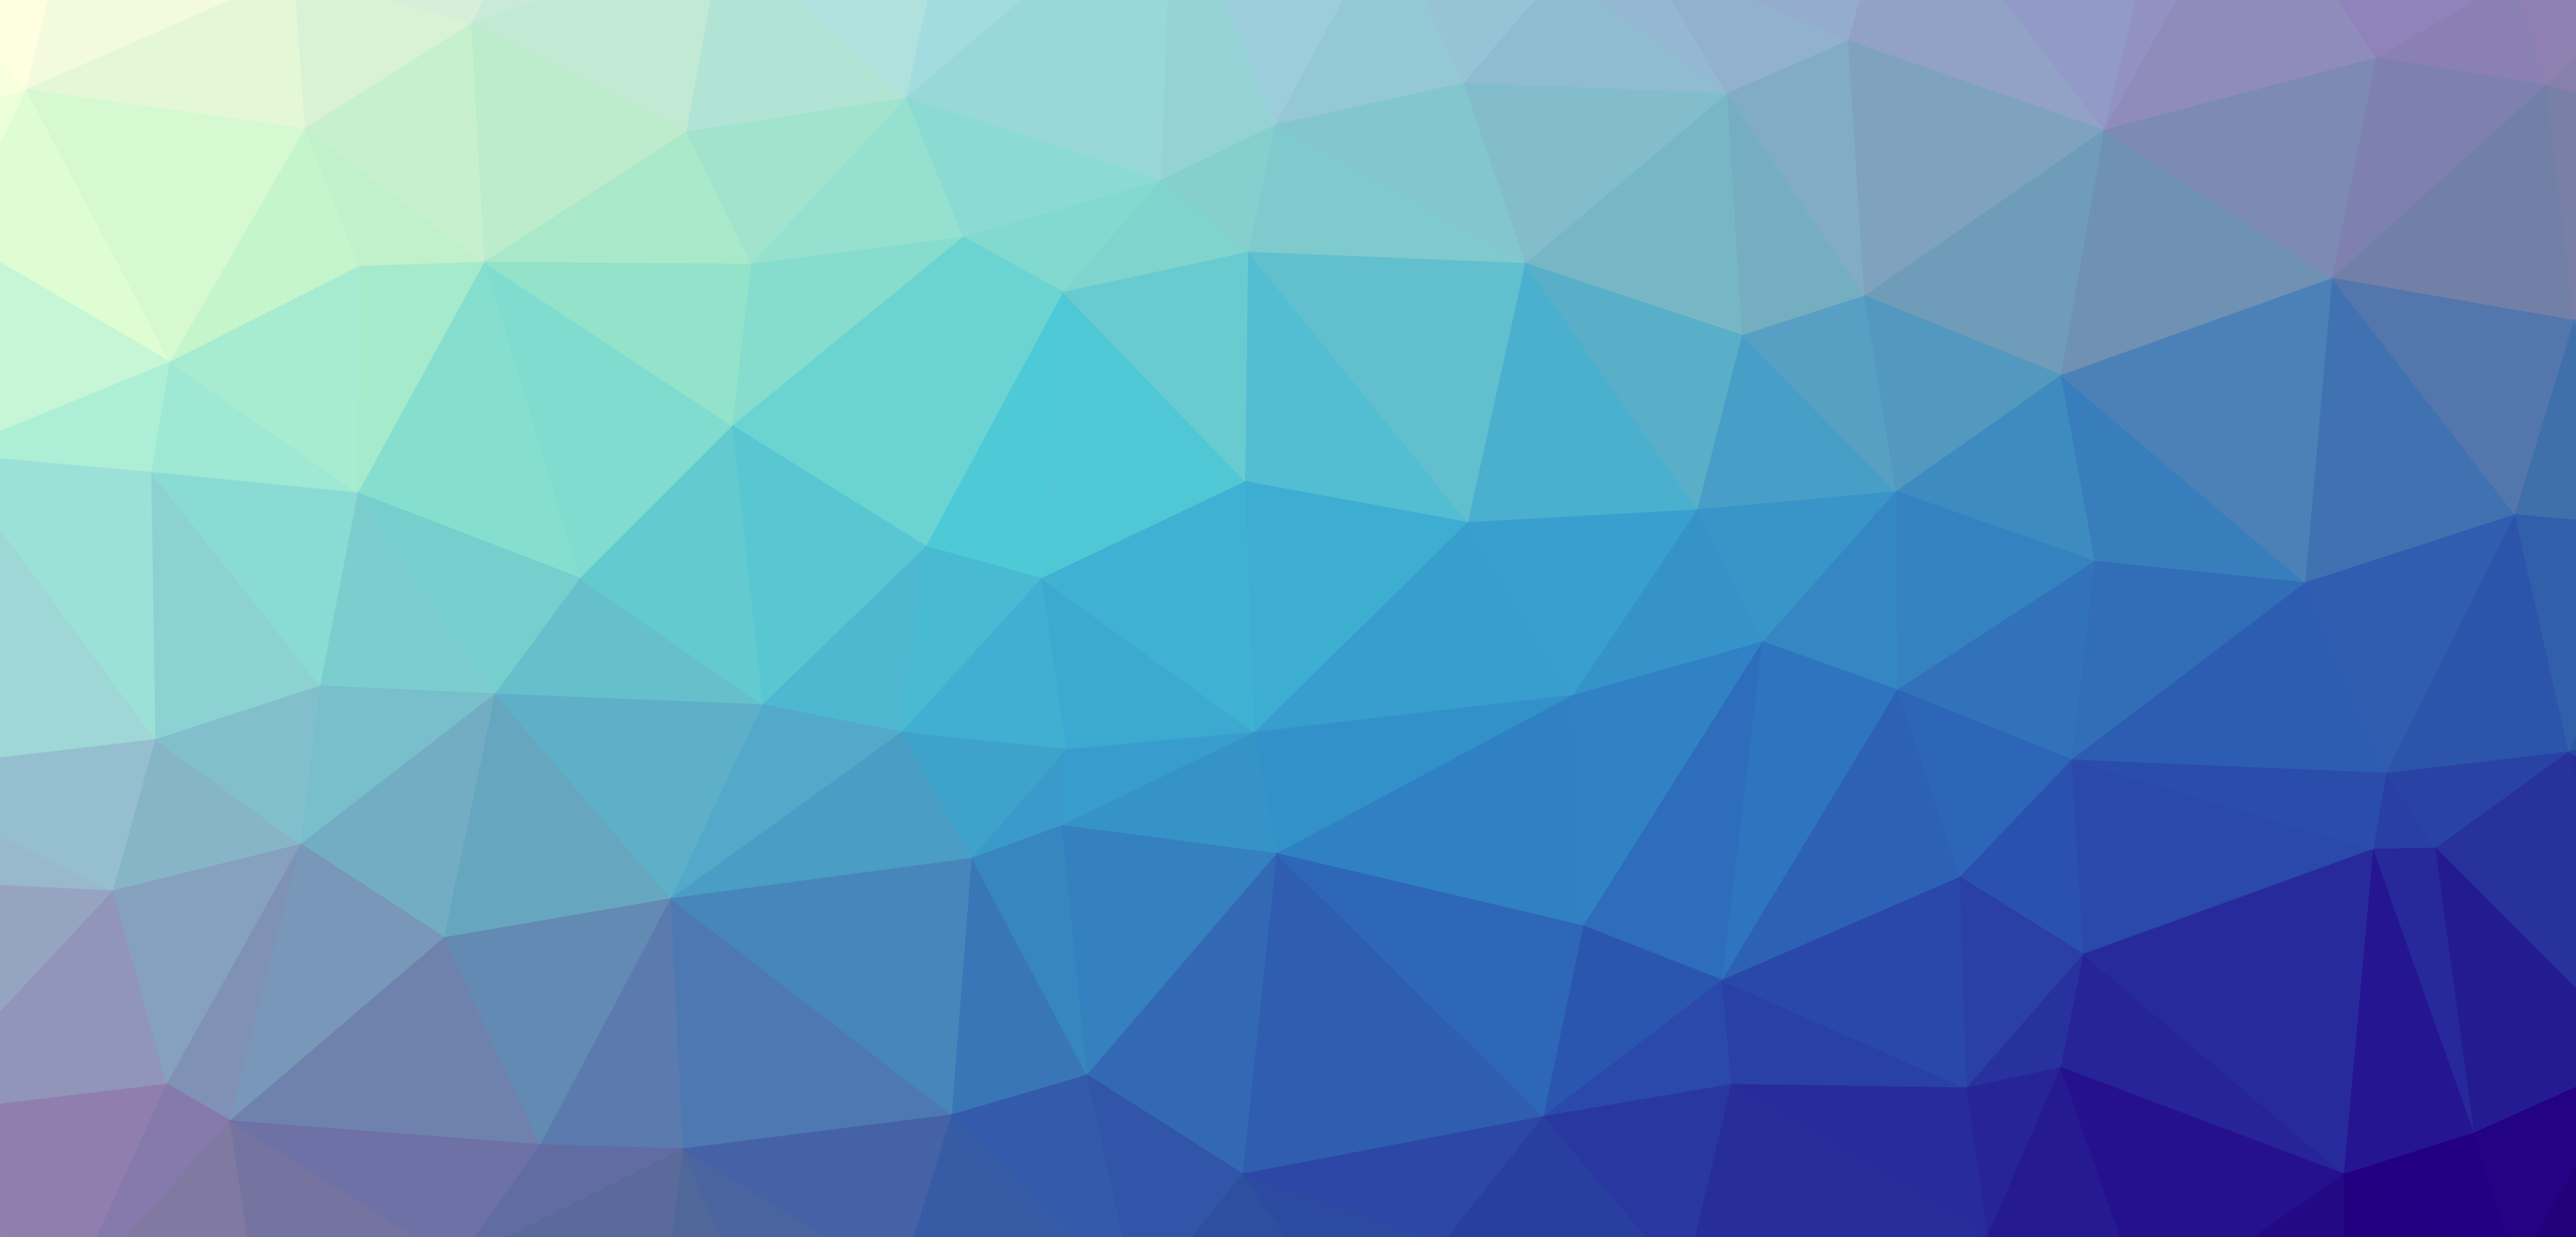 Free download Website Design Photography Backgrounds Triangles ...